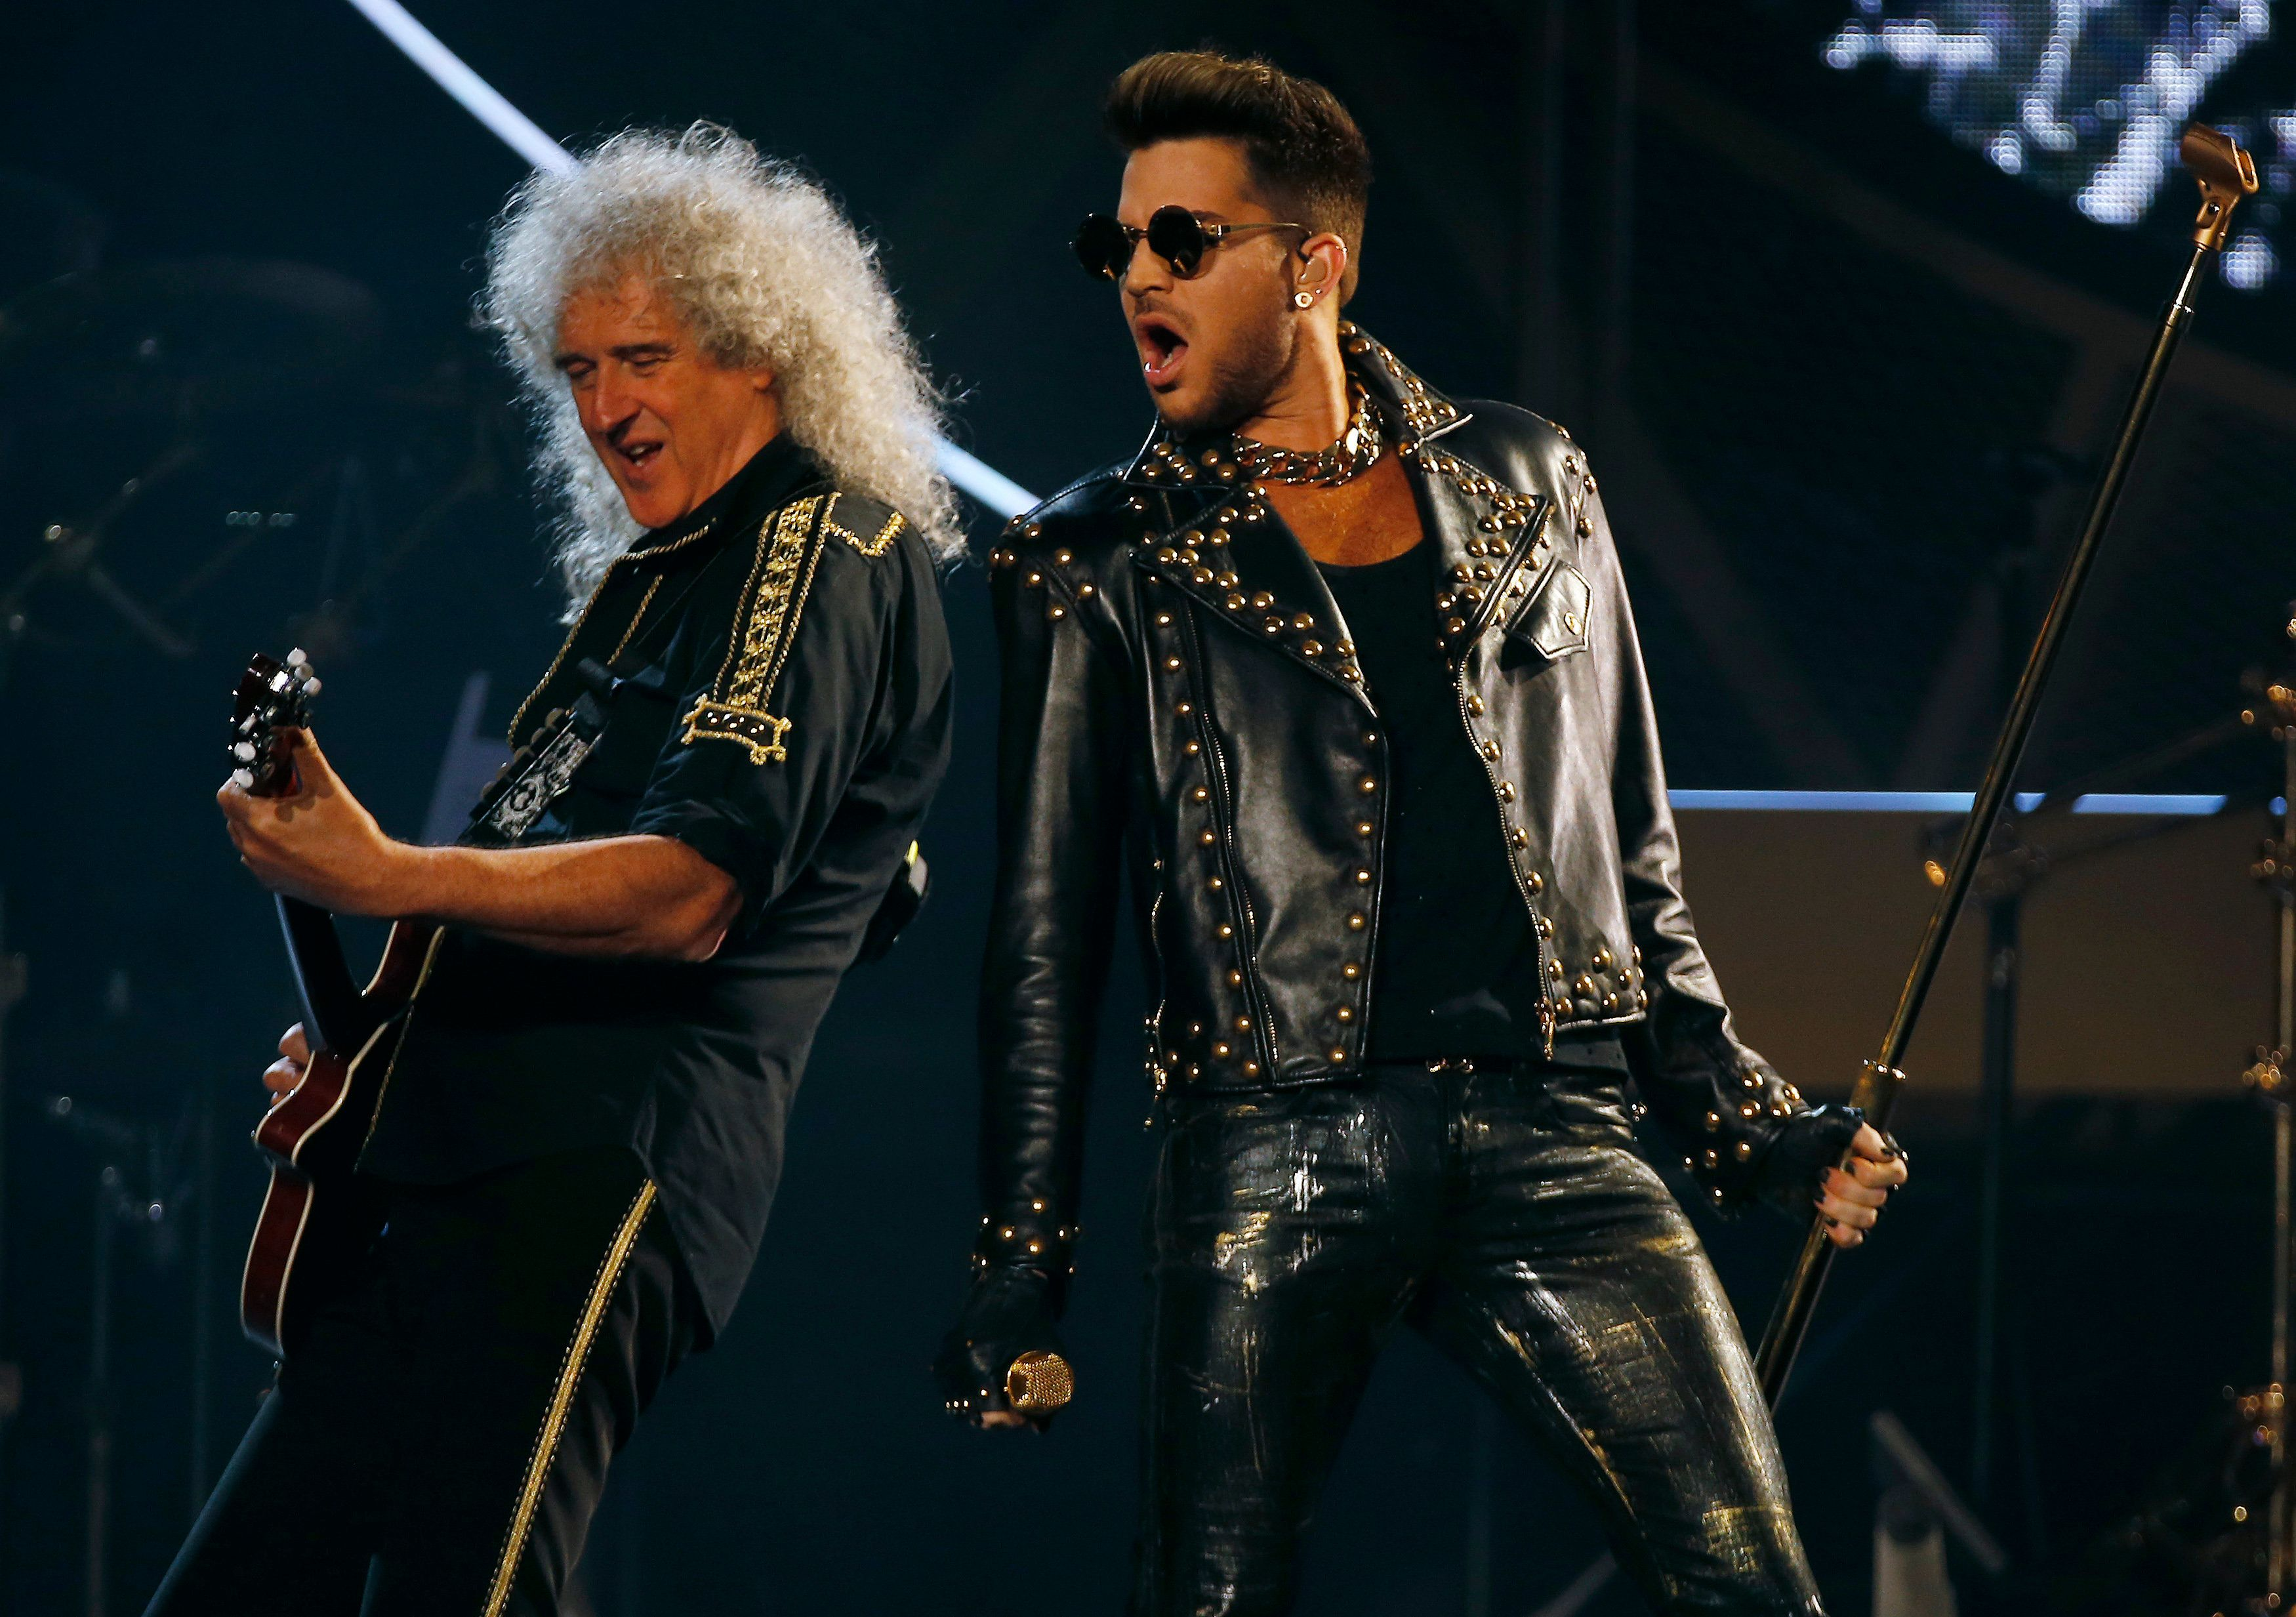 Brian May (L) of the band Queen and Adam Lambert perform during the opening night of their North American tour in Chicago, Illinois, June 19, 2014.    REUTERS/Jim Young  (UNITED STATES - Tags: ENTERTAINMENT)